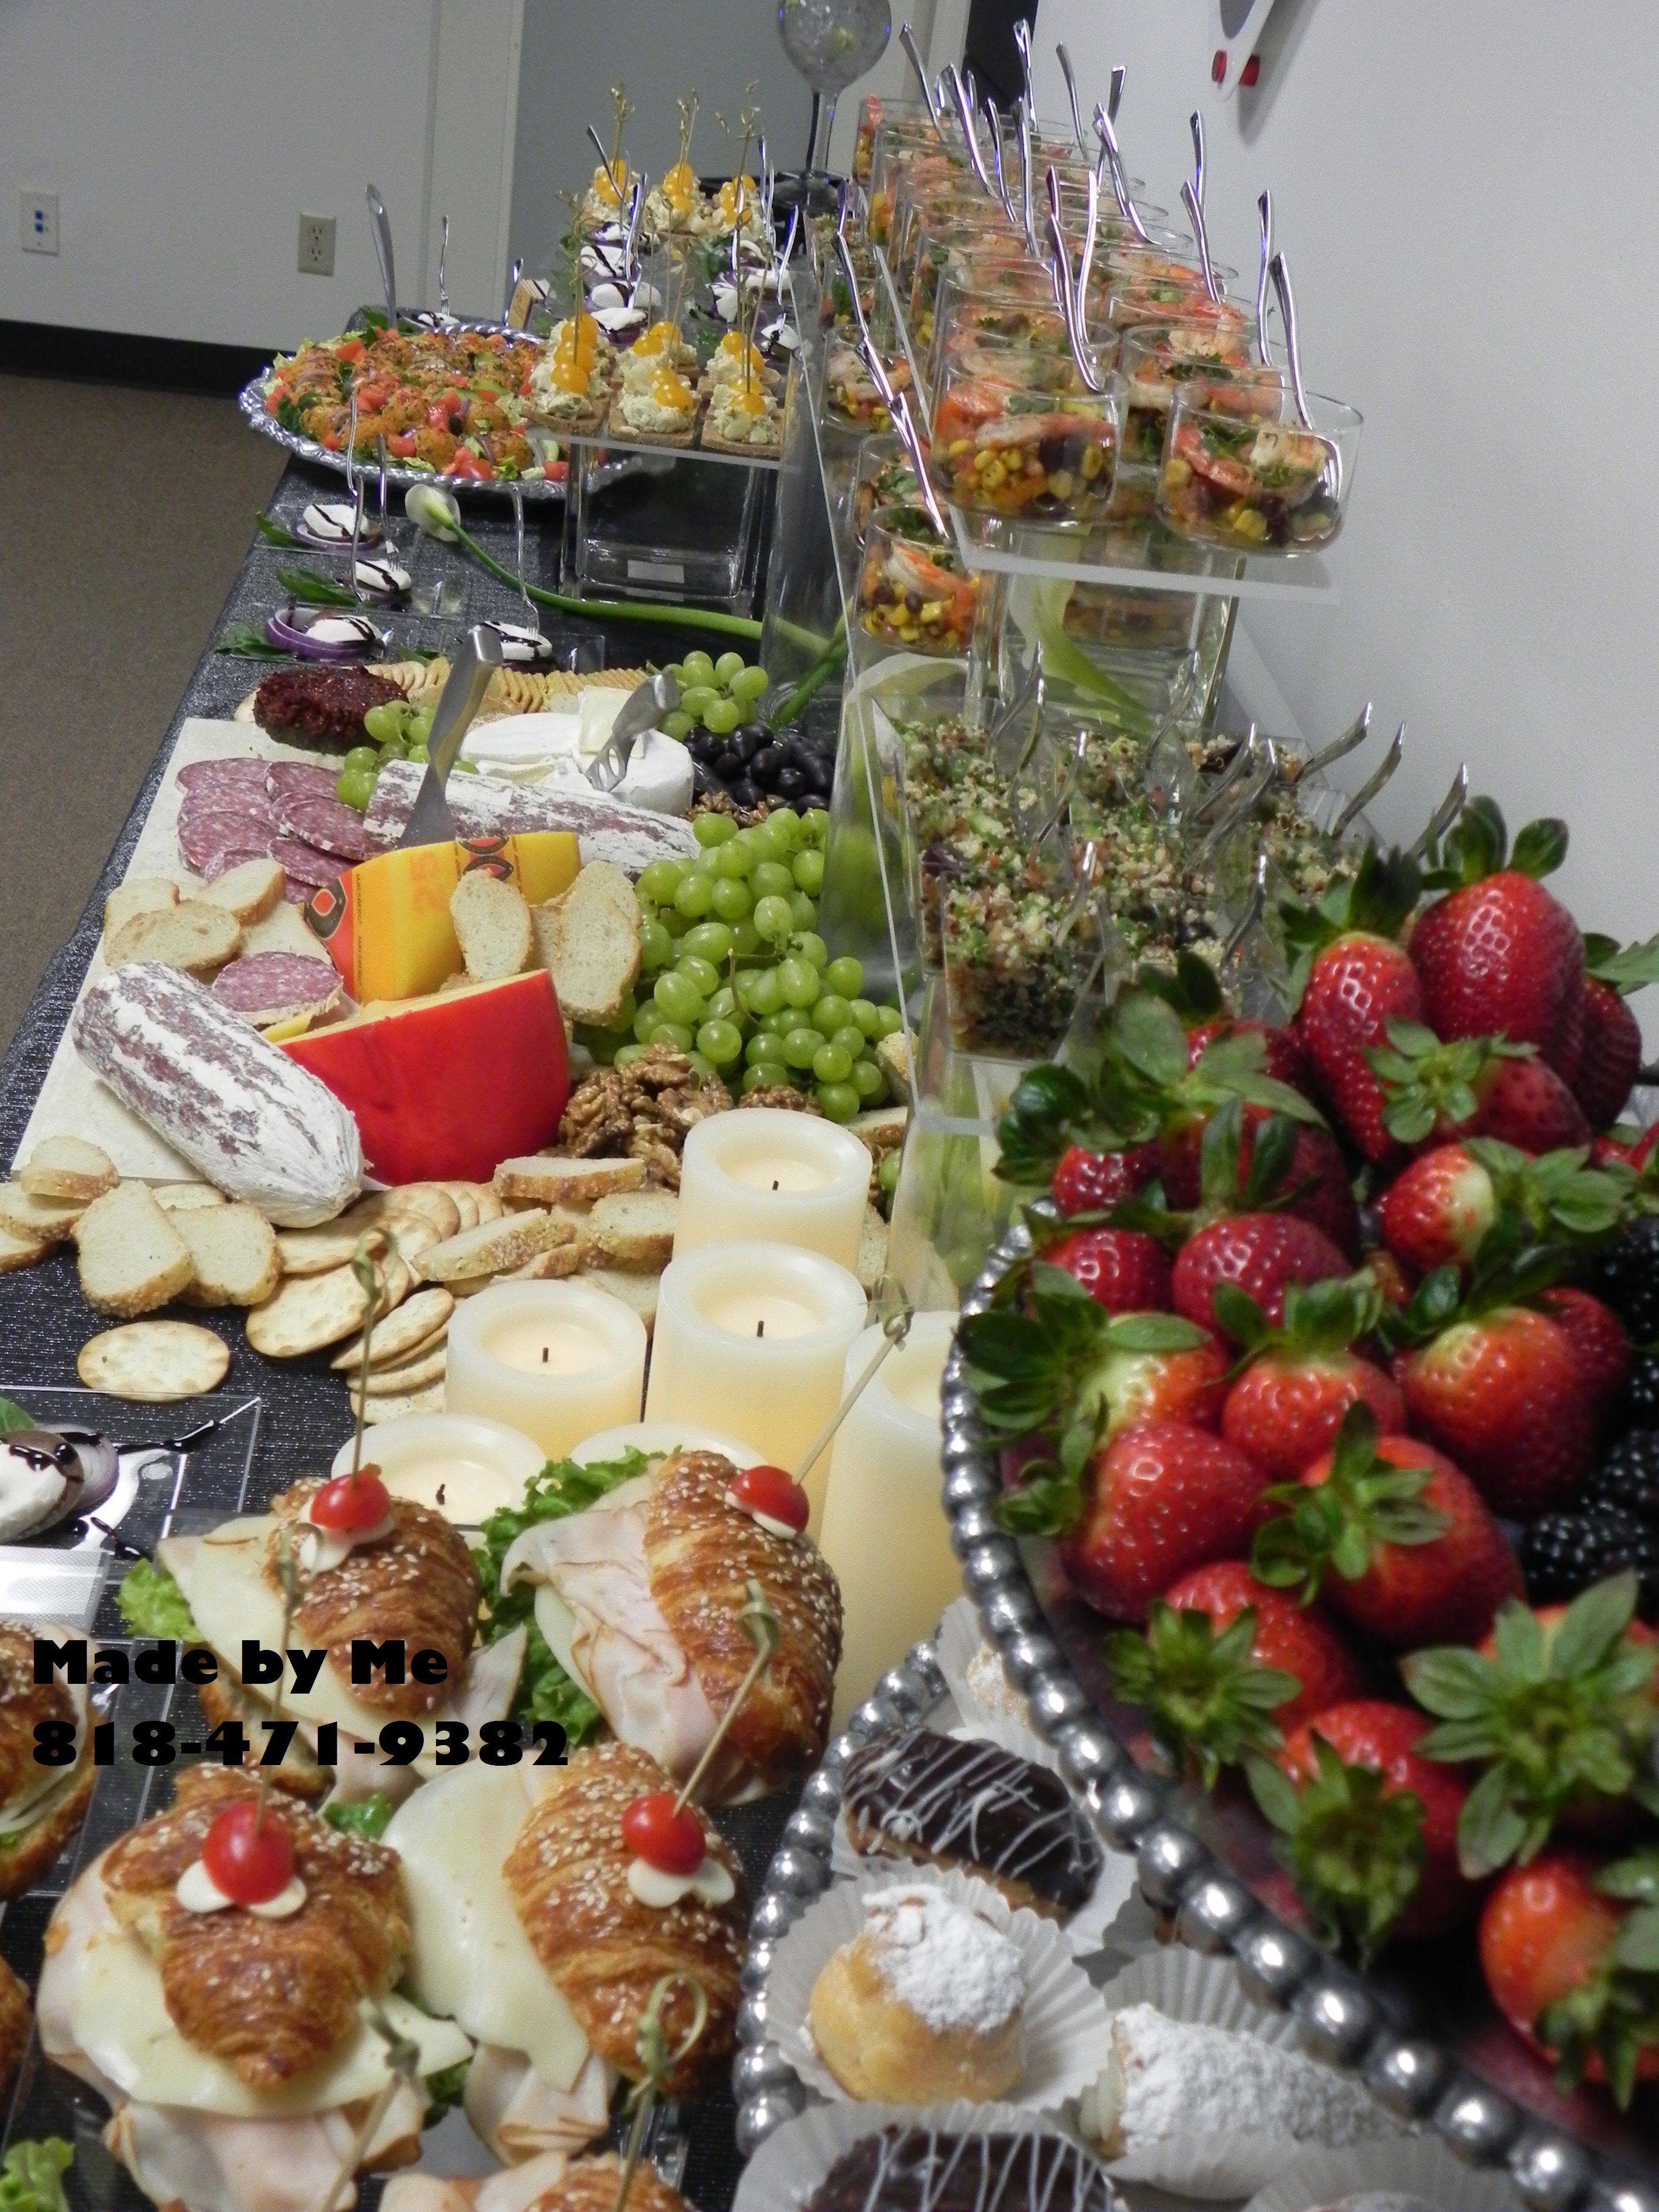 real estate office grand opening food finger food catering fruits